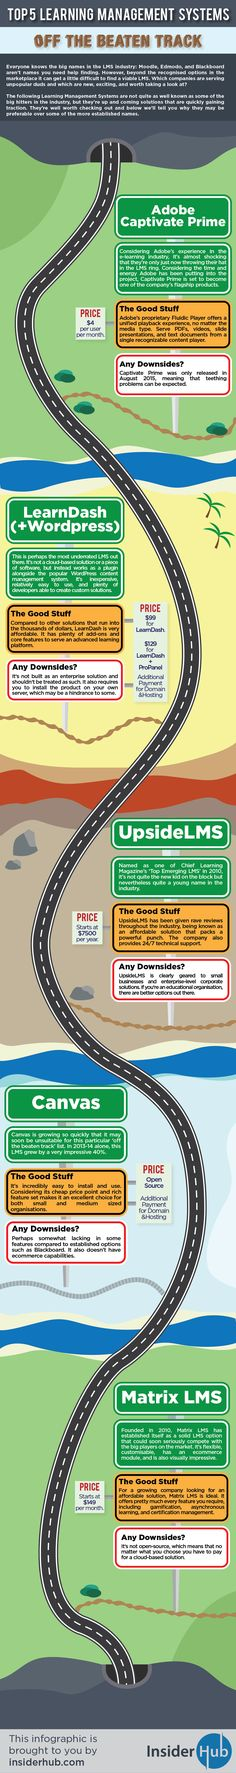 Top 5 LMS Off the Beaten Track #infographic #eLearning #LMS